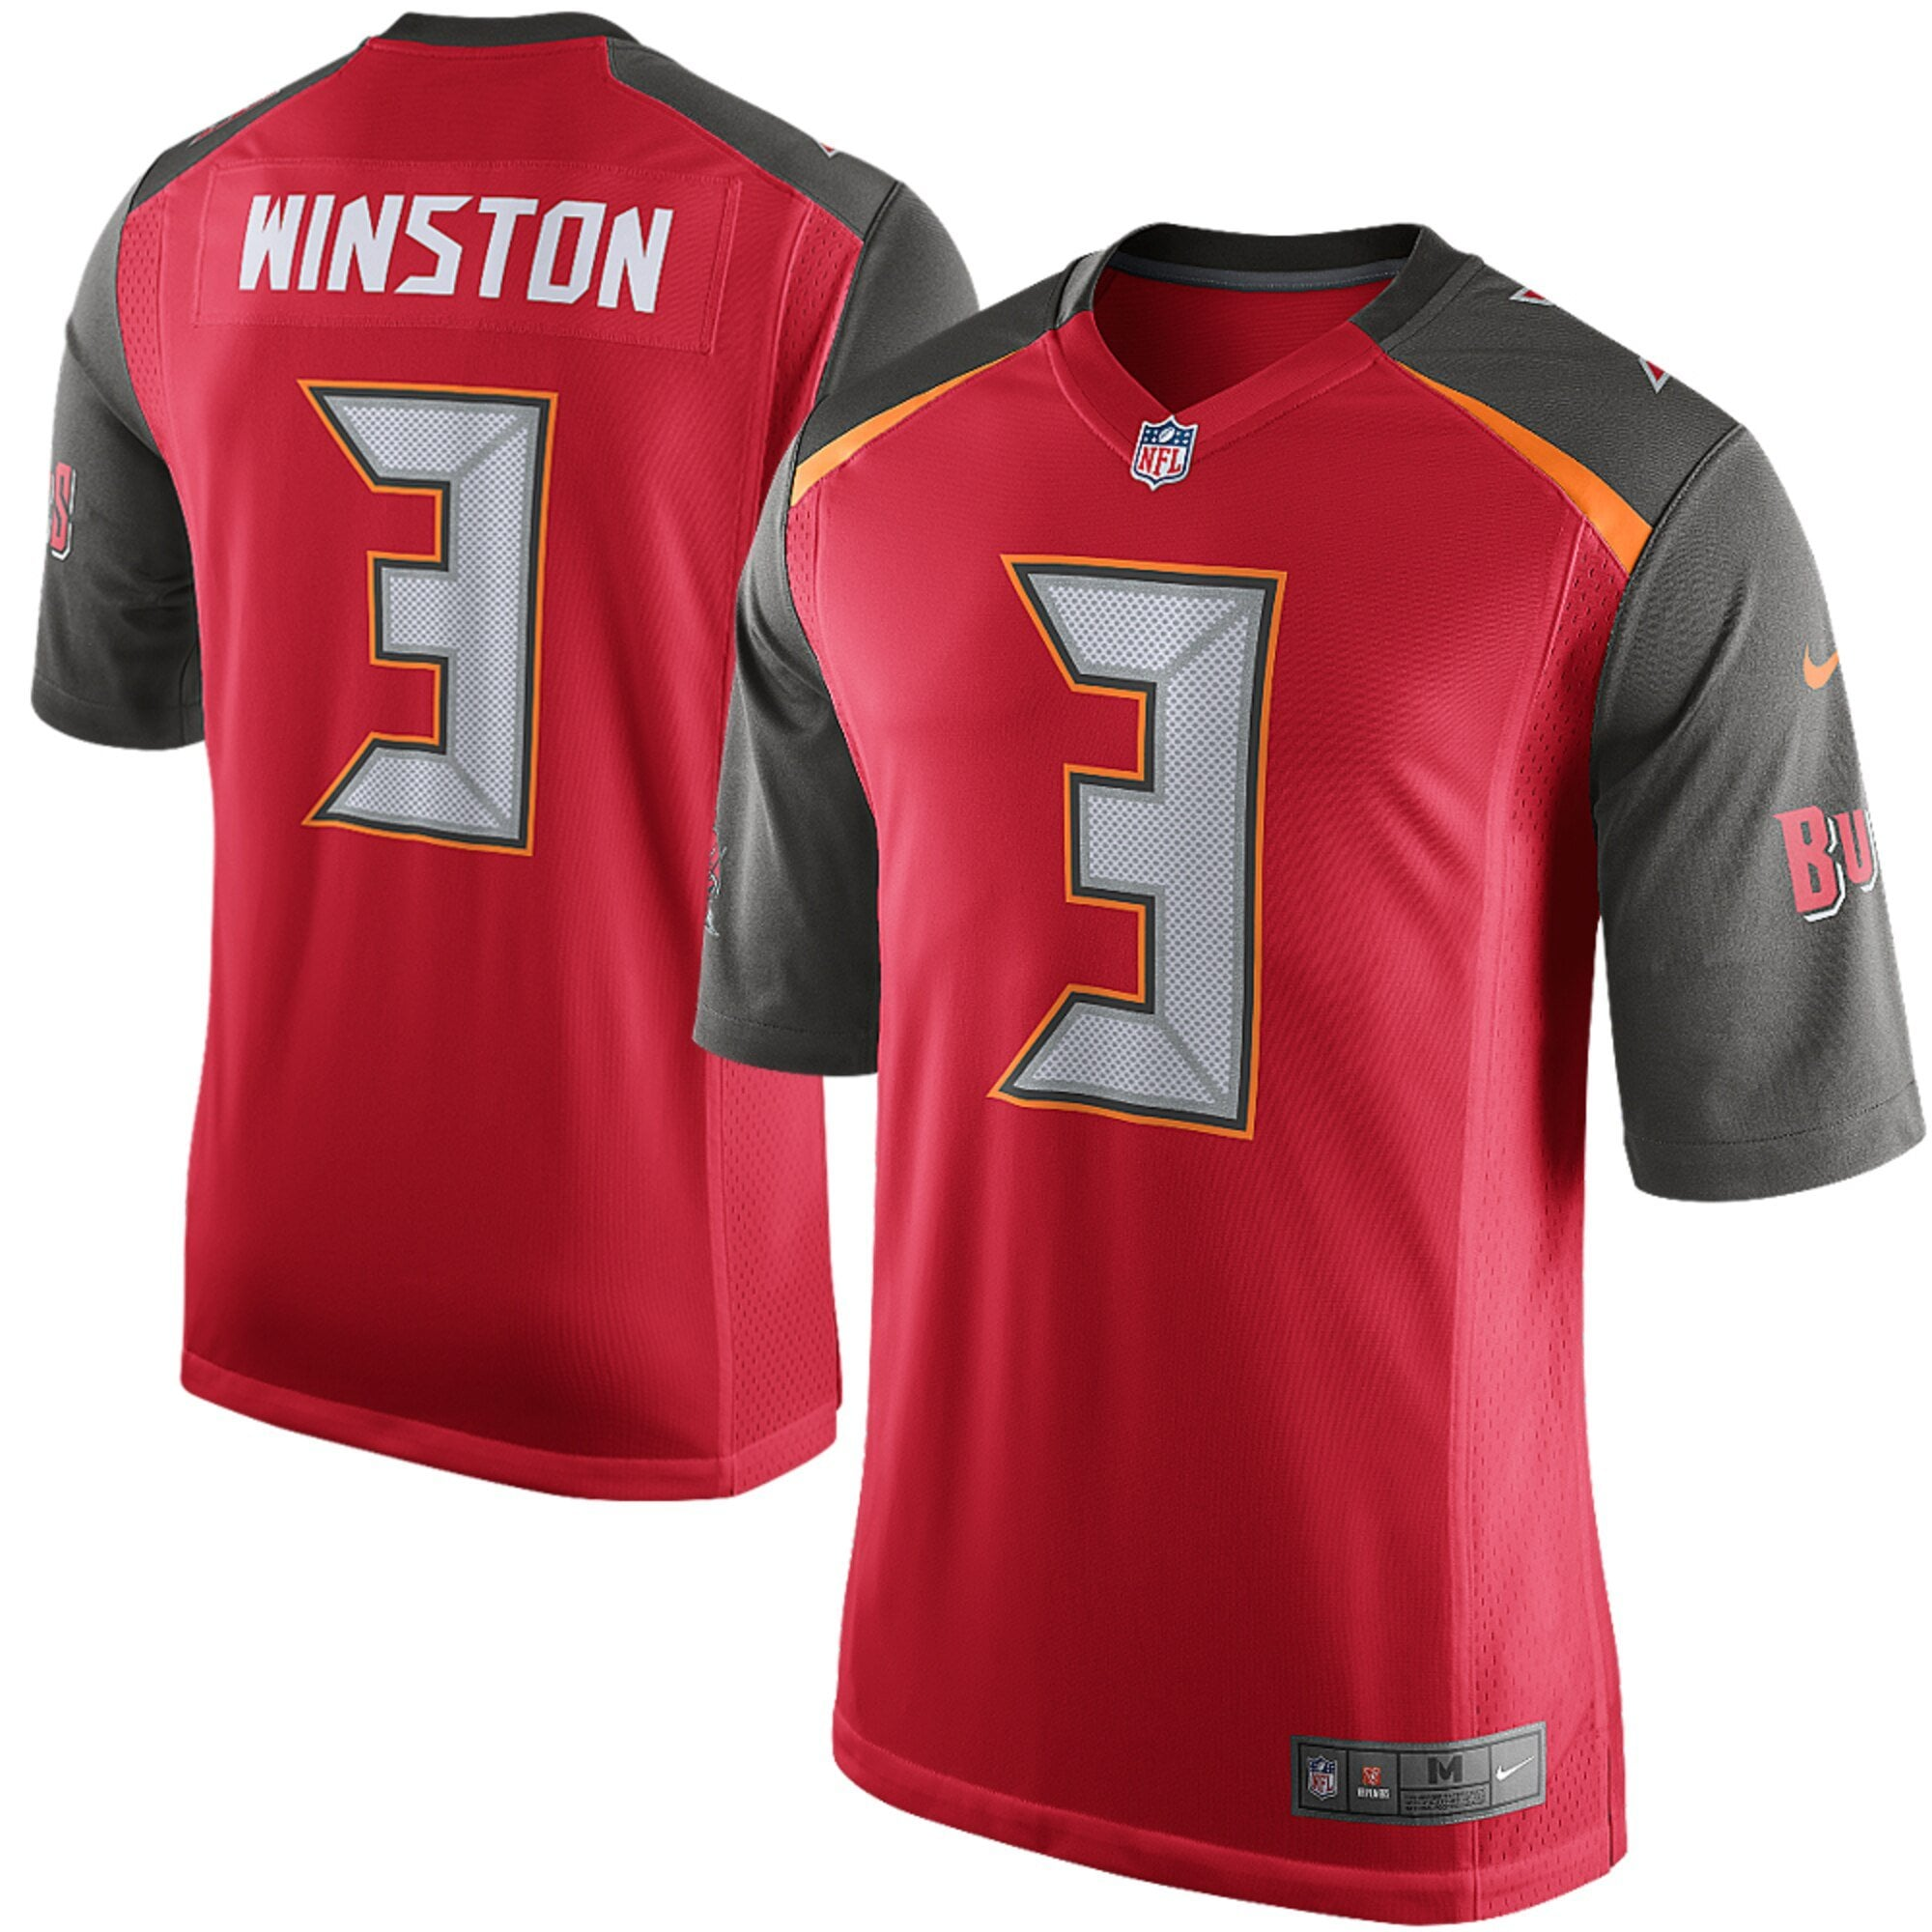 nike nfl tampa bay buccaneers youth home game jersey jameis winston teams from usa sports uk nike nfl tampa bay buccaneers youth home game jersey jameis winston